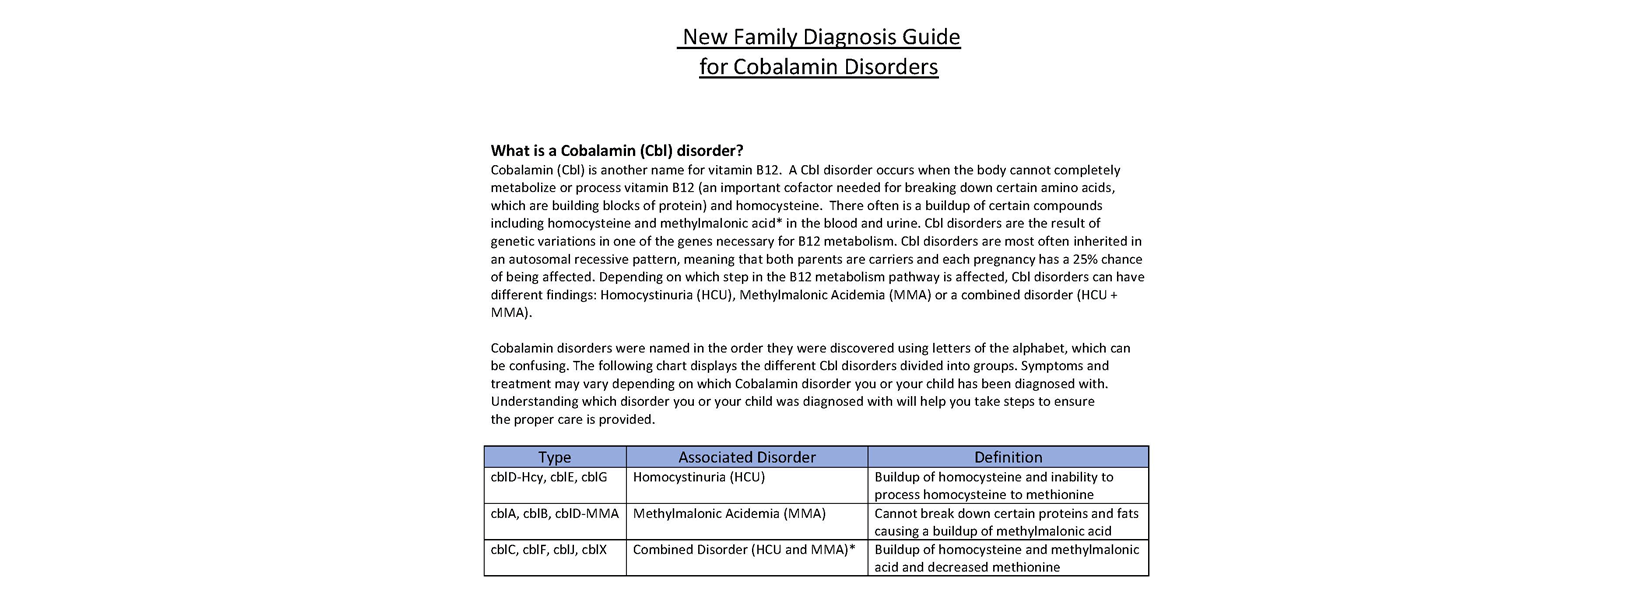 New Family Guide for Cobalamin Disorders